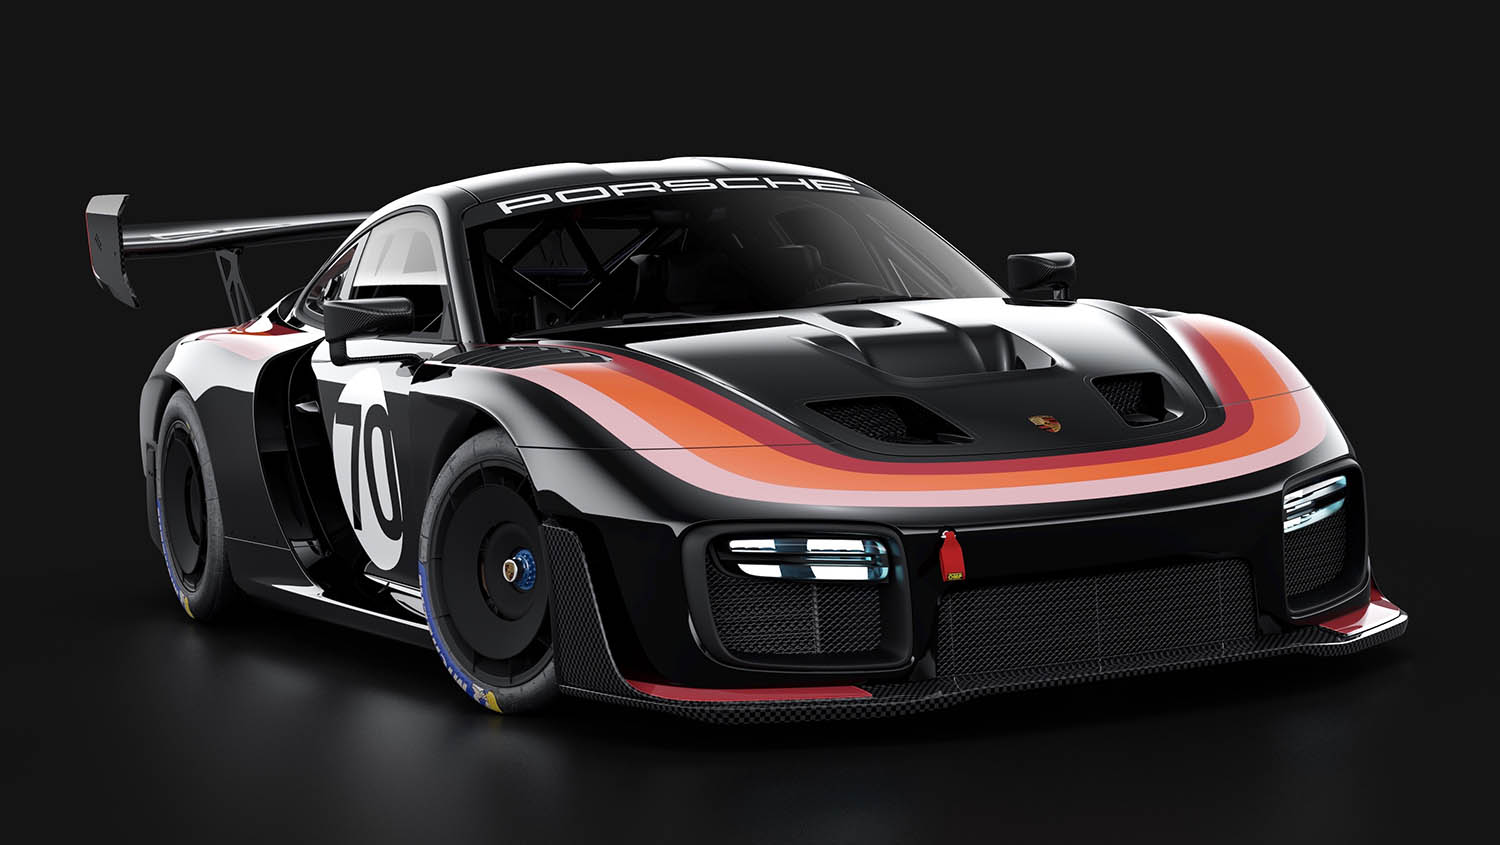 high_porsche_935_livery_interscope_2019_porsche_ag.jpg